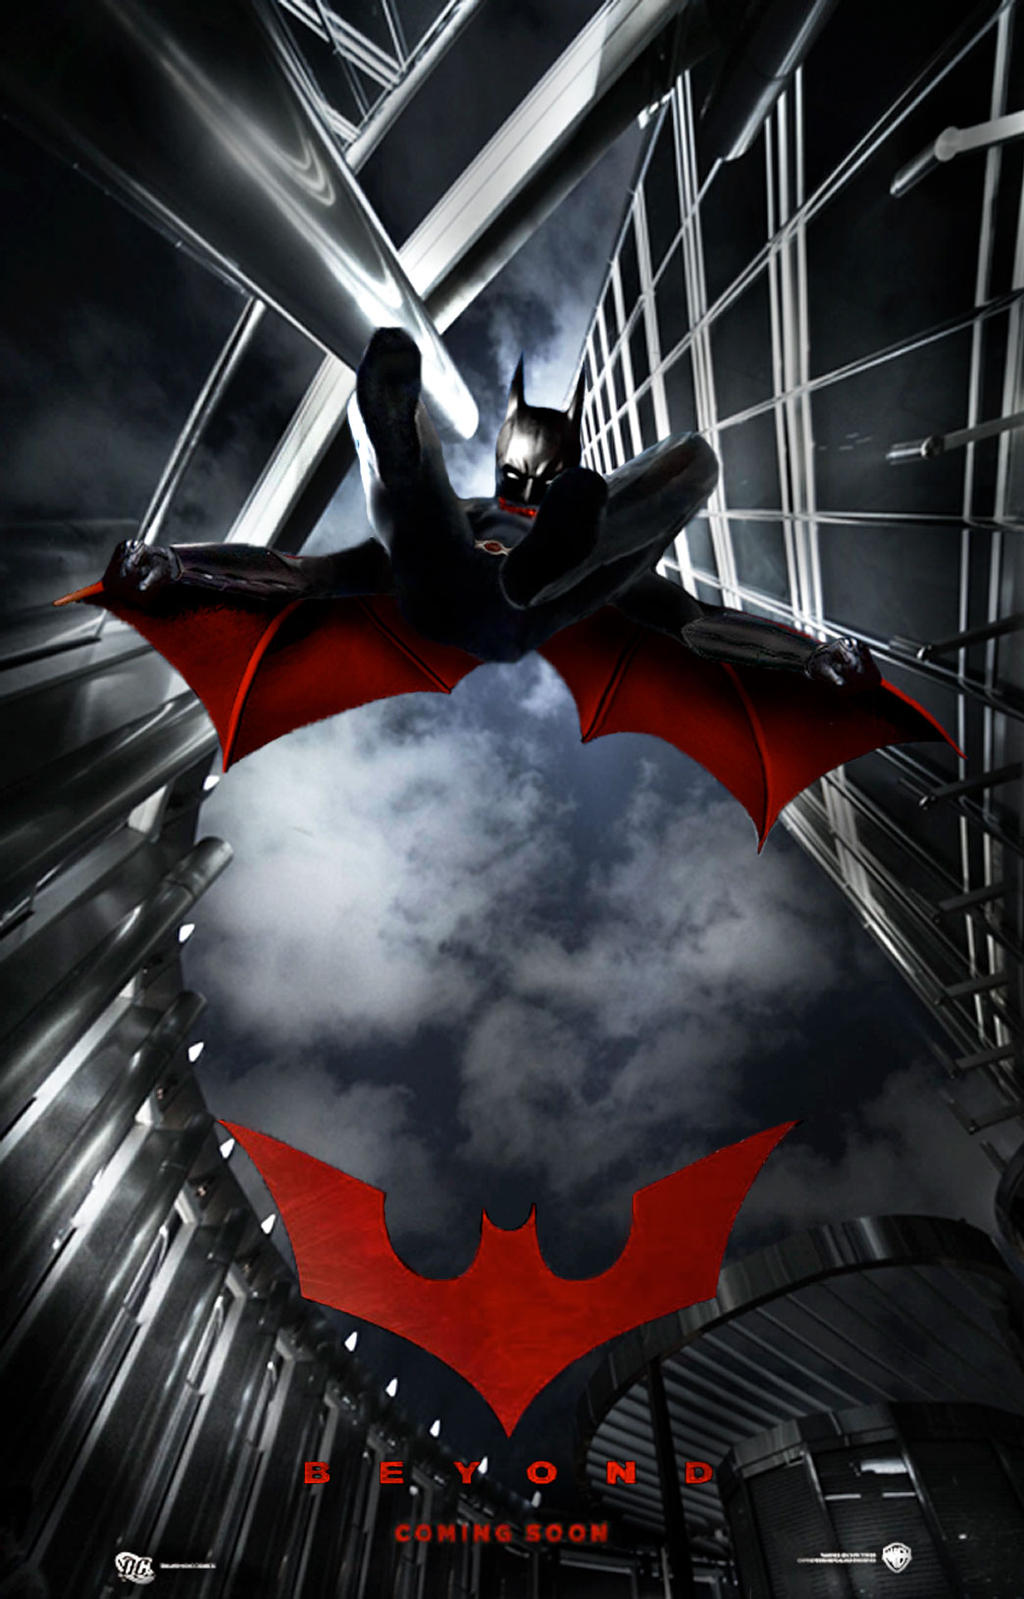 http://fc03.deviantart.net/fs70/i/2012/366/c/f/batman_beyond_live_action_poster__better_version__by_minirifpomsiyu-d5pwqnm.jpg